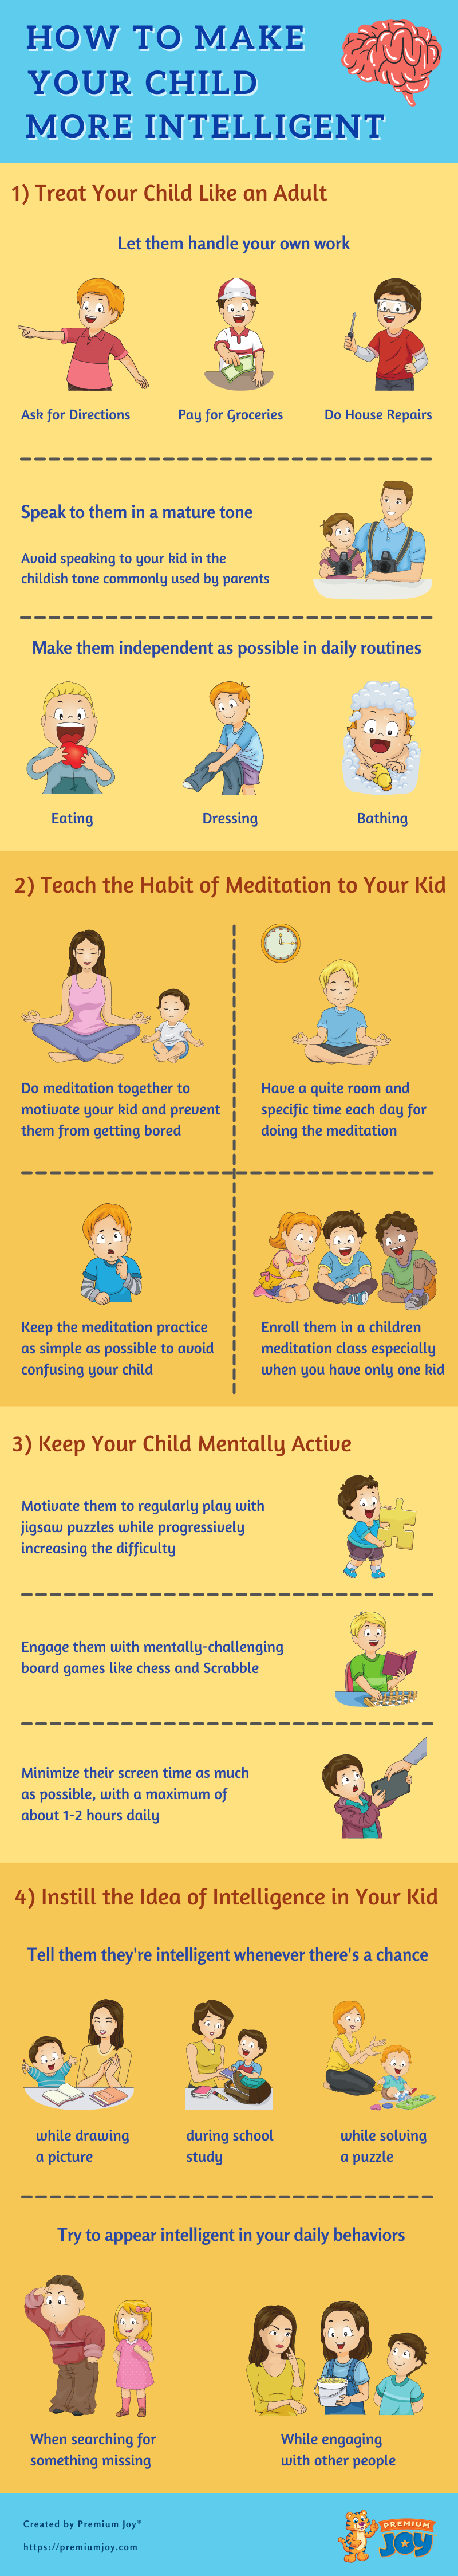 how to make your child more intelligent - infographic